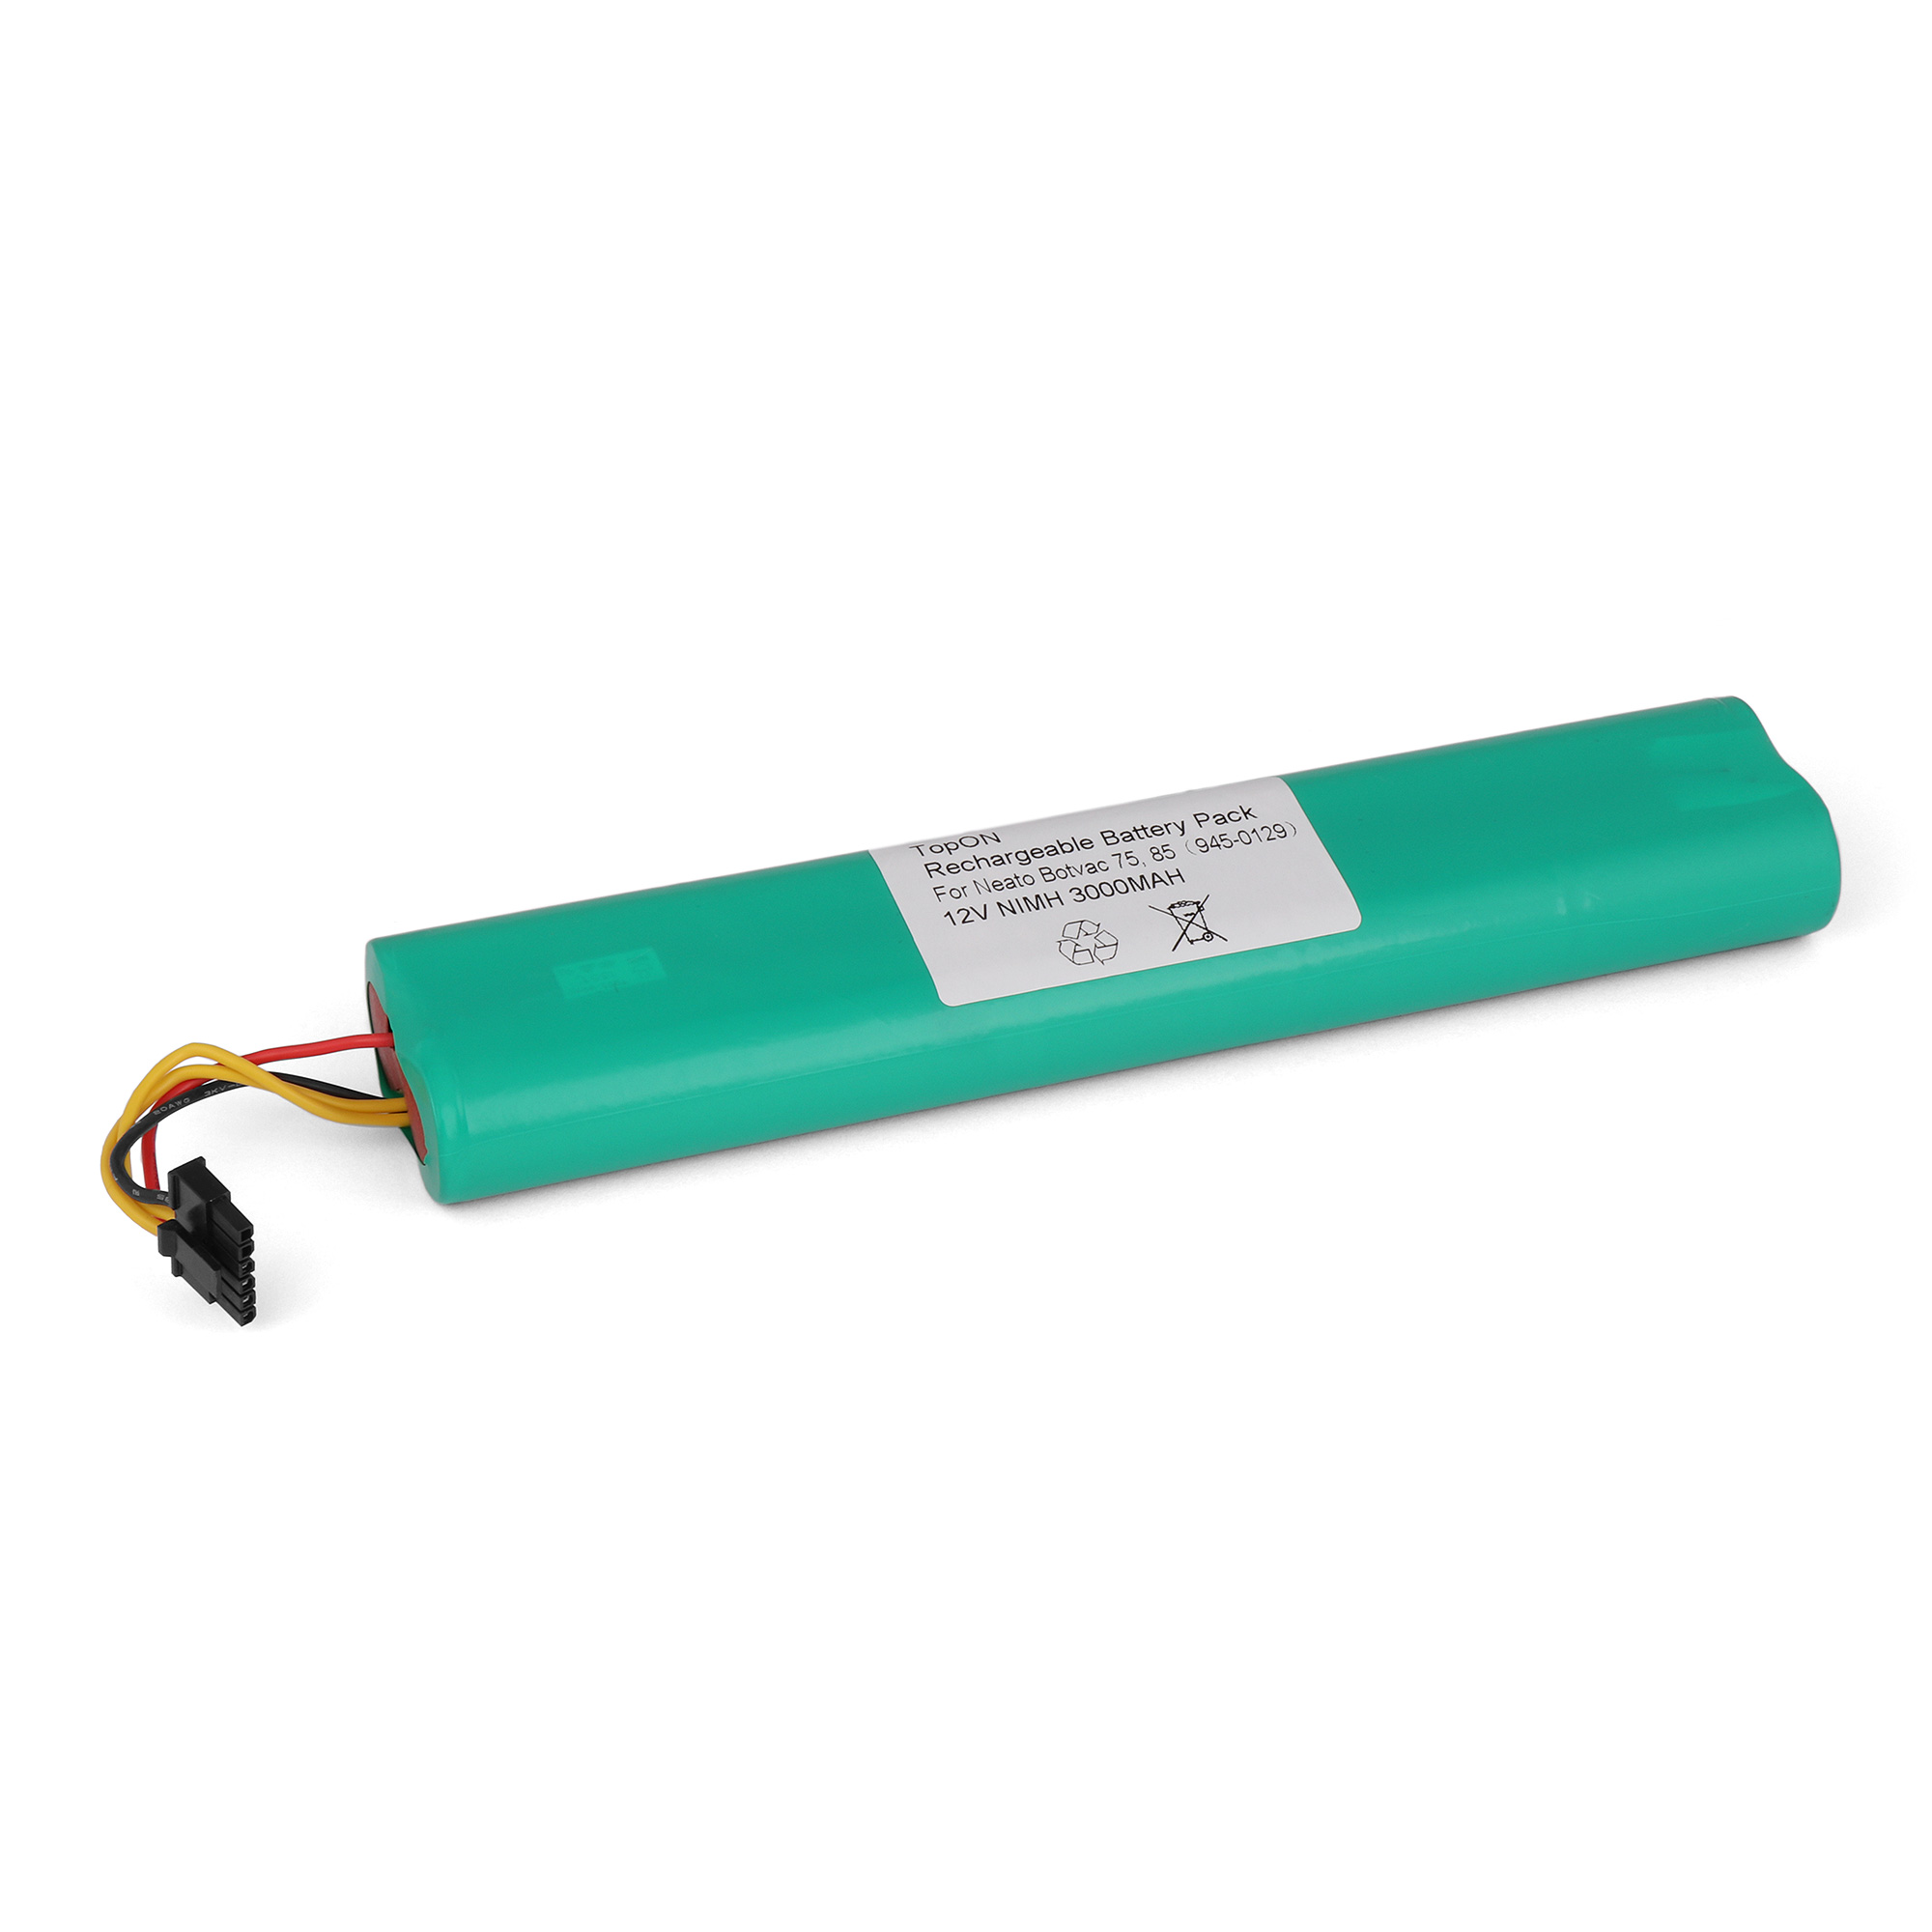 Аккумулятор для пылесоса TopON Neato Botvac 70e, 75, 80, 85. 12V 3000mAh Ni-MH. PN: 945-0129. потребительские товары oem neato 4 x 4 x neato botvac 70 75 80 85 silicone blades and brushes for neato botvac